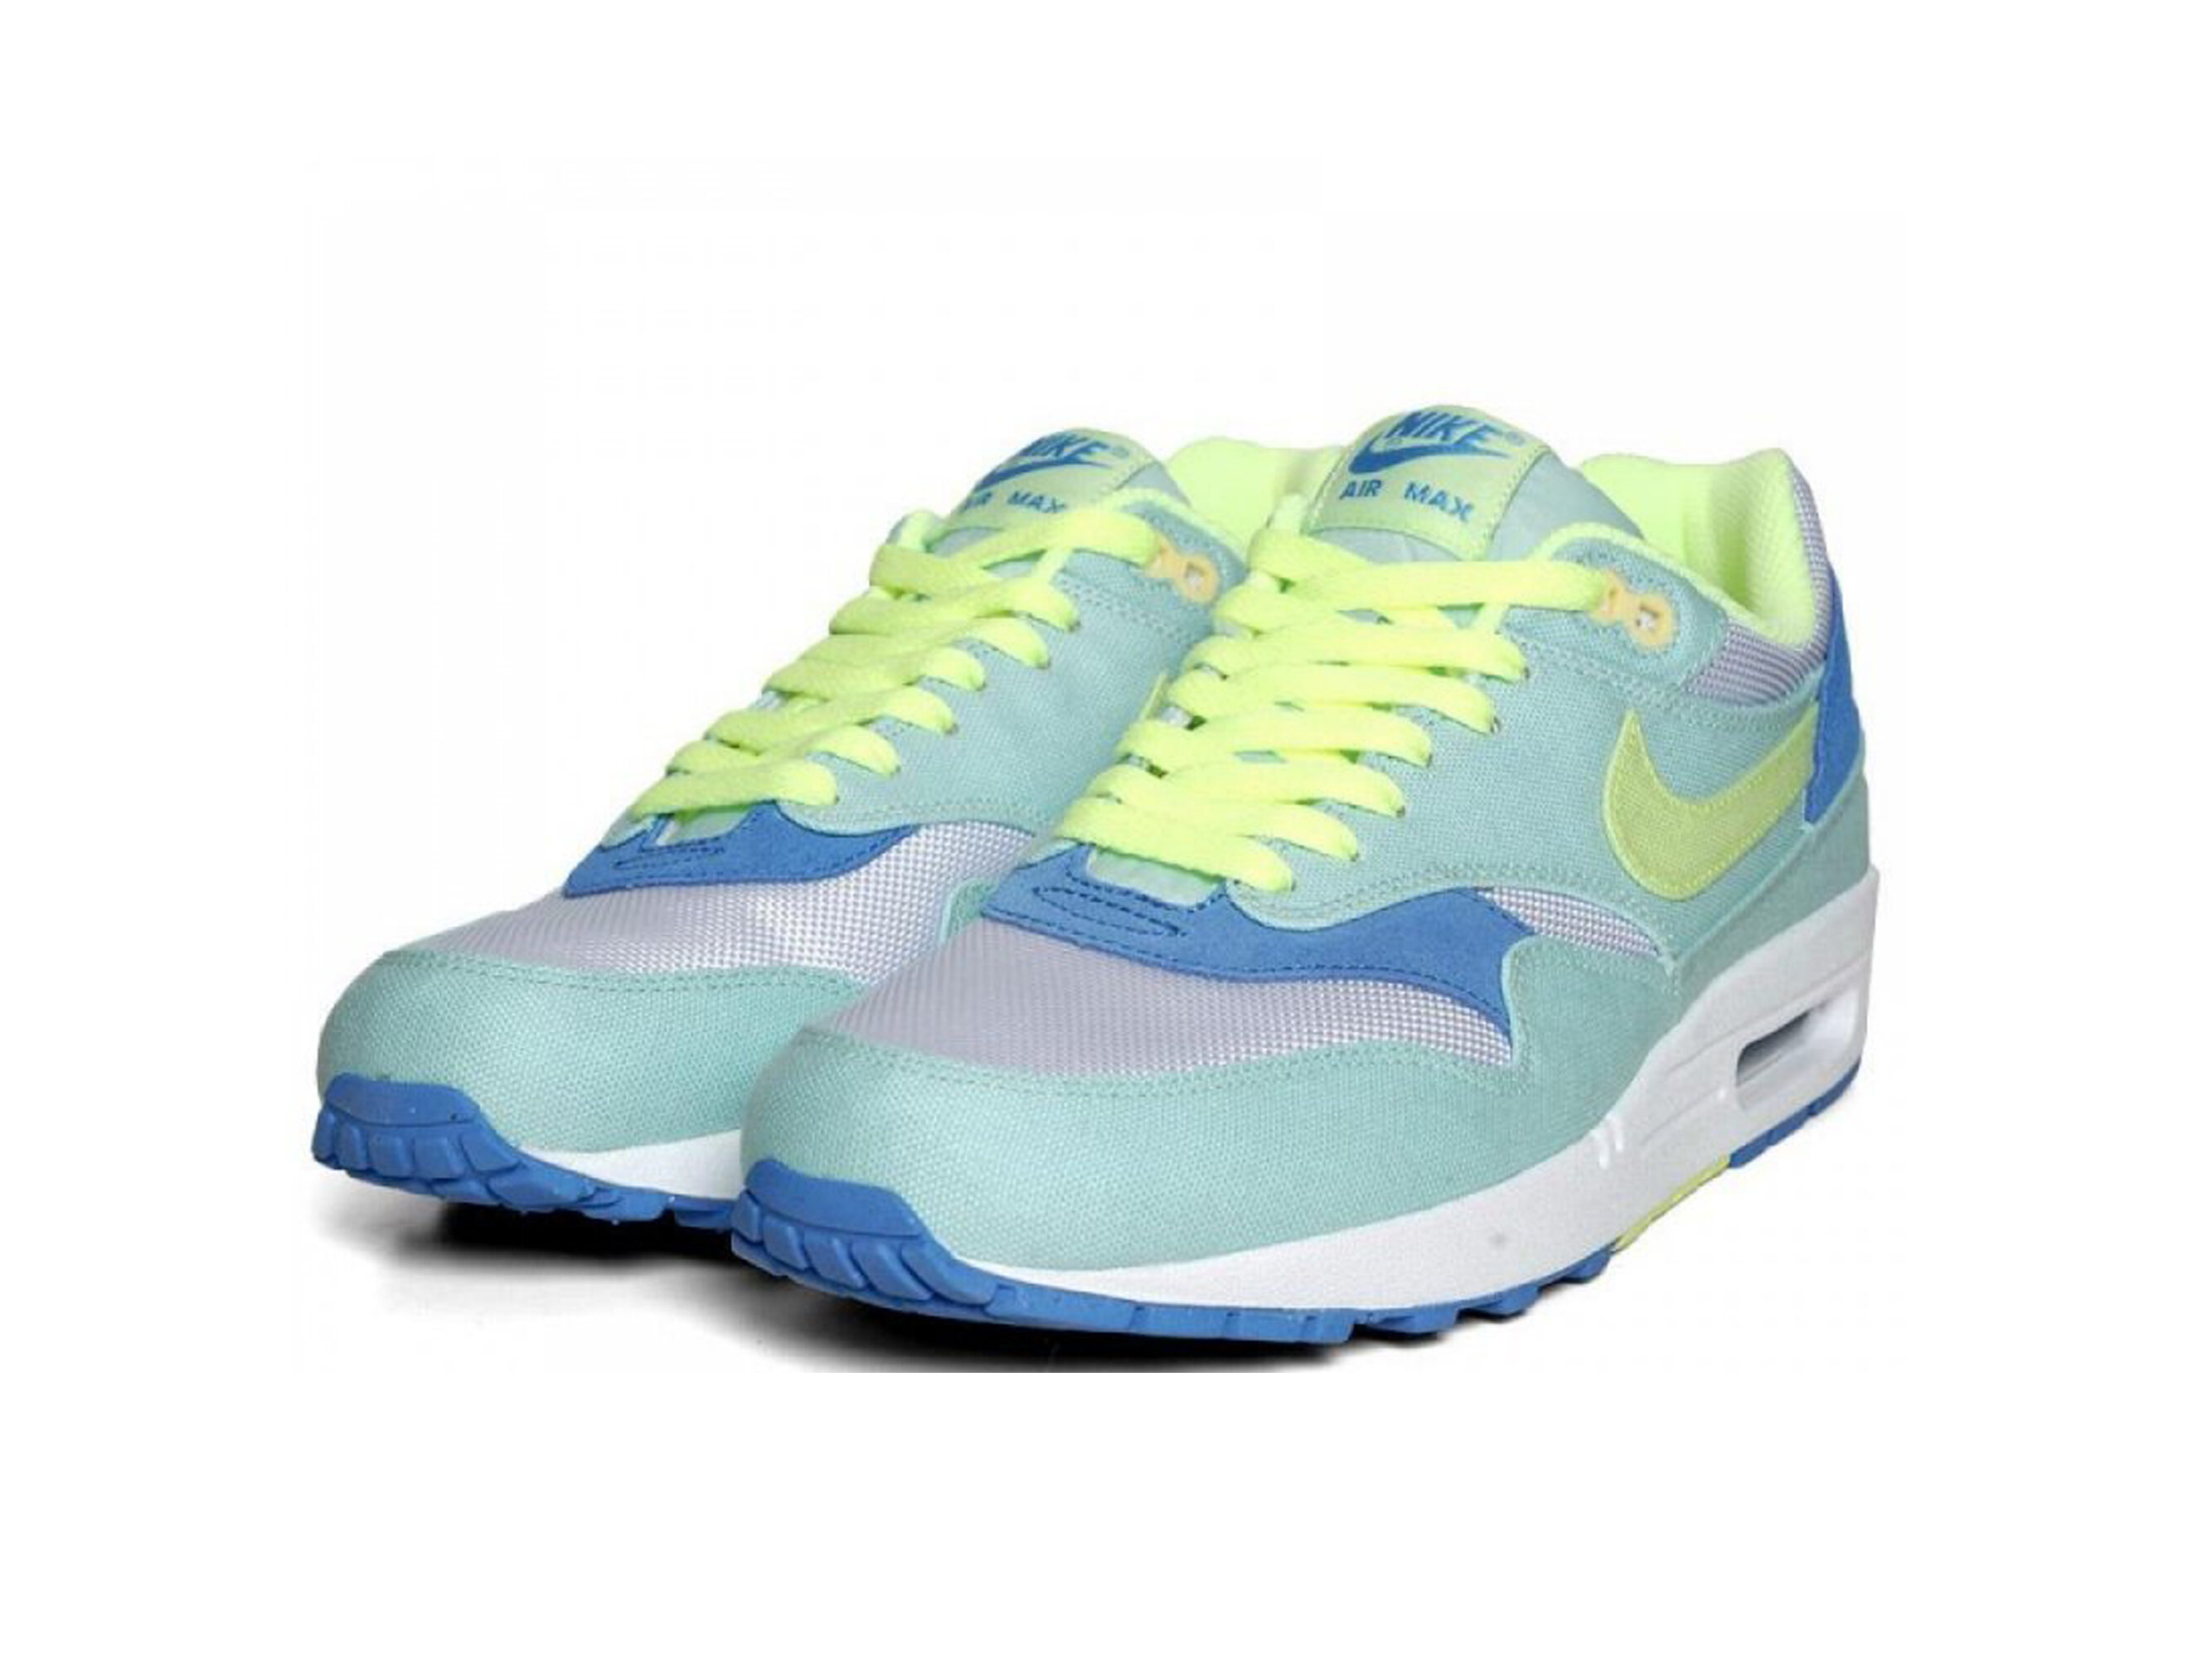 nike air max 1 87 liquid lime 319986_301 купить